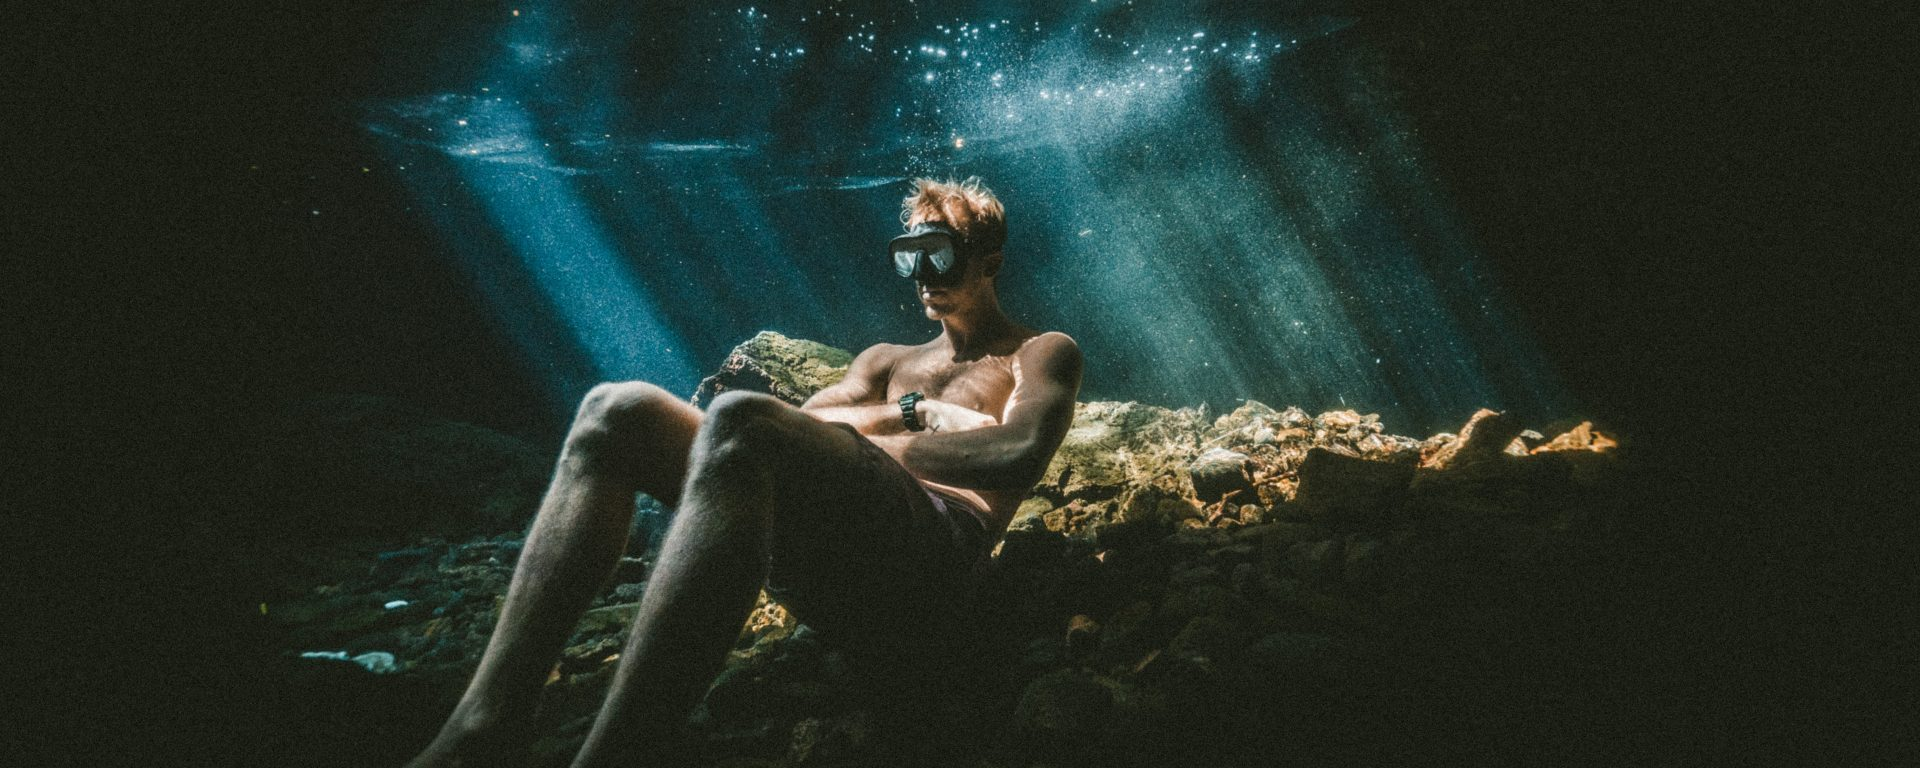 a man sitting underwater - an effect that could be achieved with adobe photoshop elements